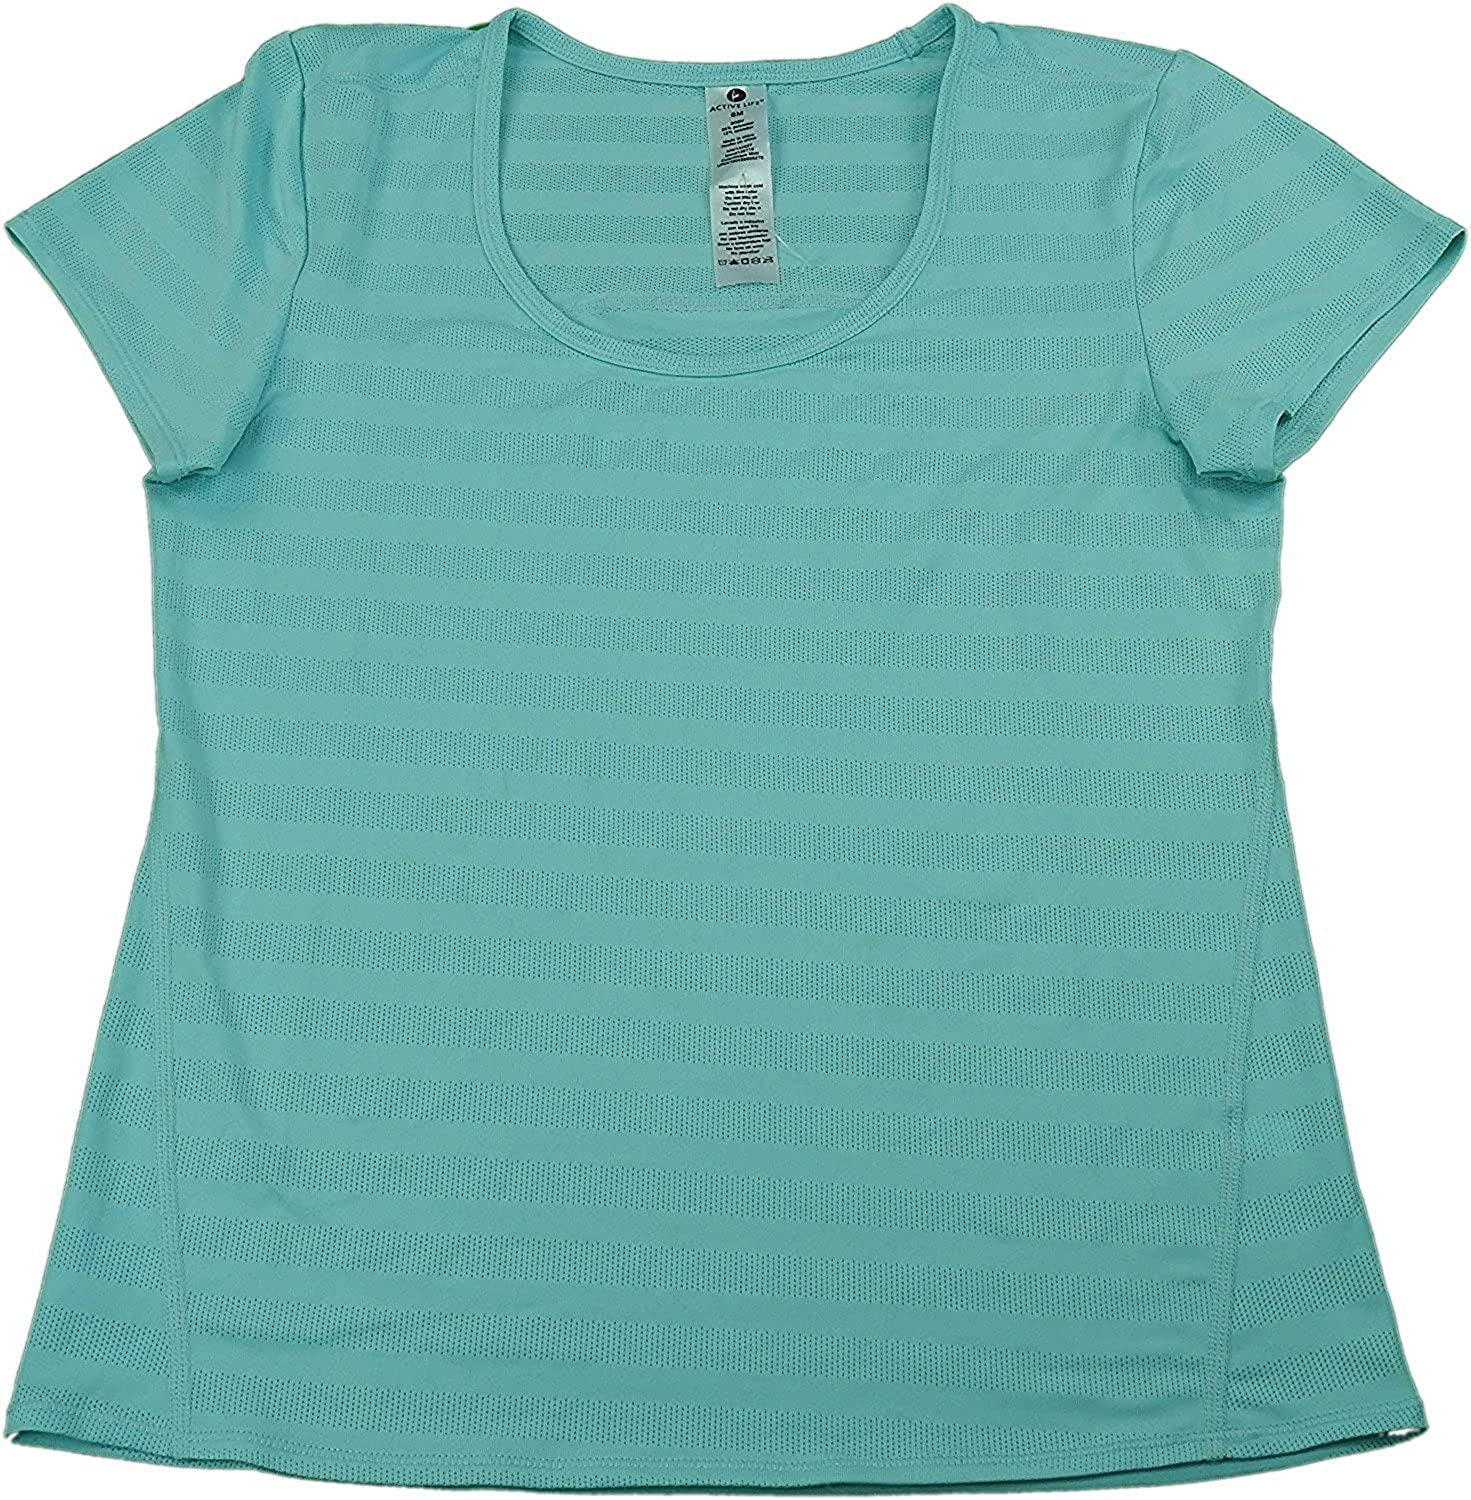 Active Life Ladies Performance Moisture Wicking T-Shirt Aqua Mint